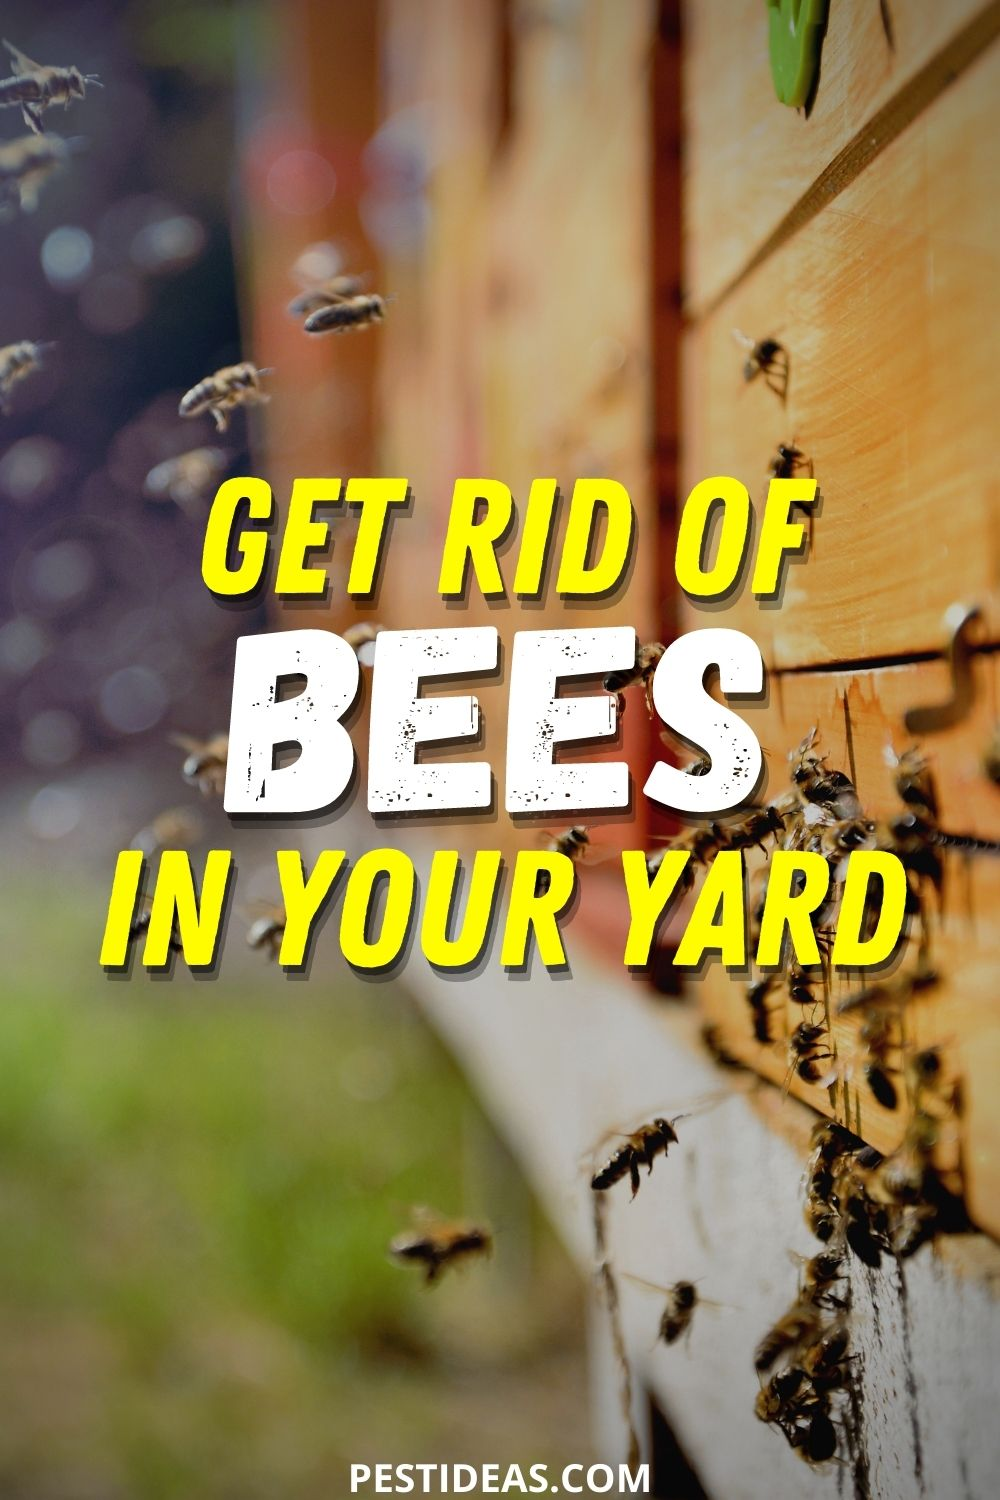 Get Rid of Bees in Your Yard